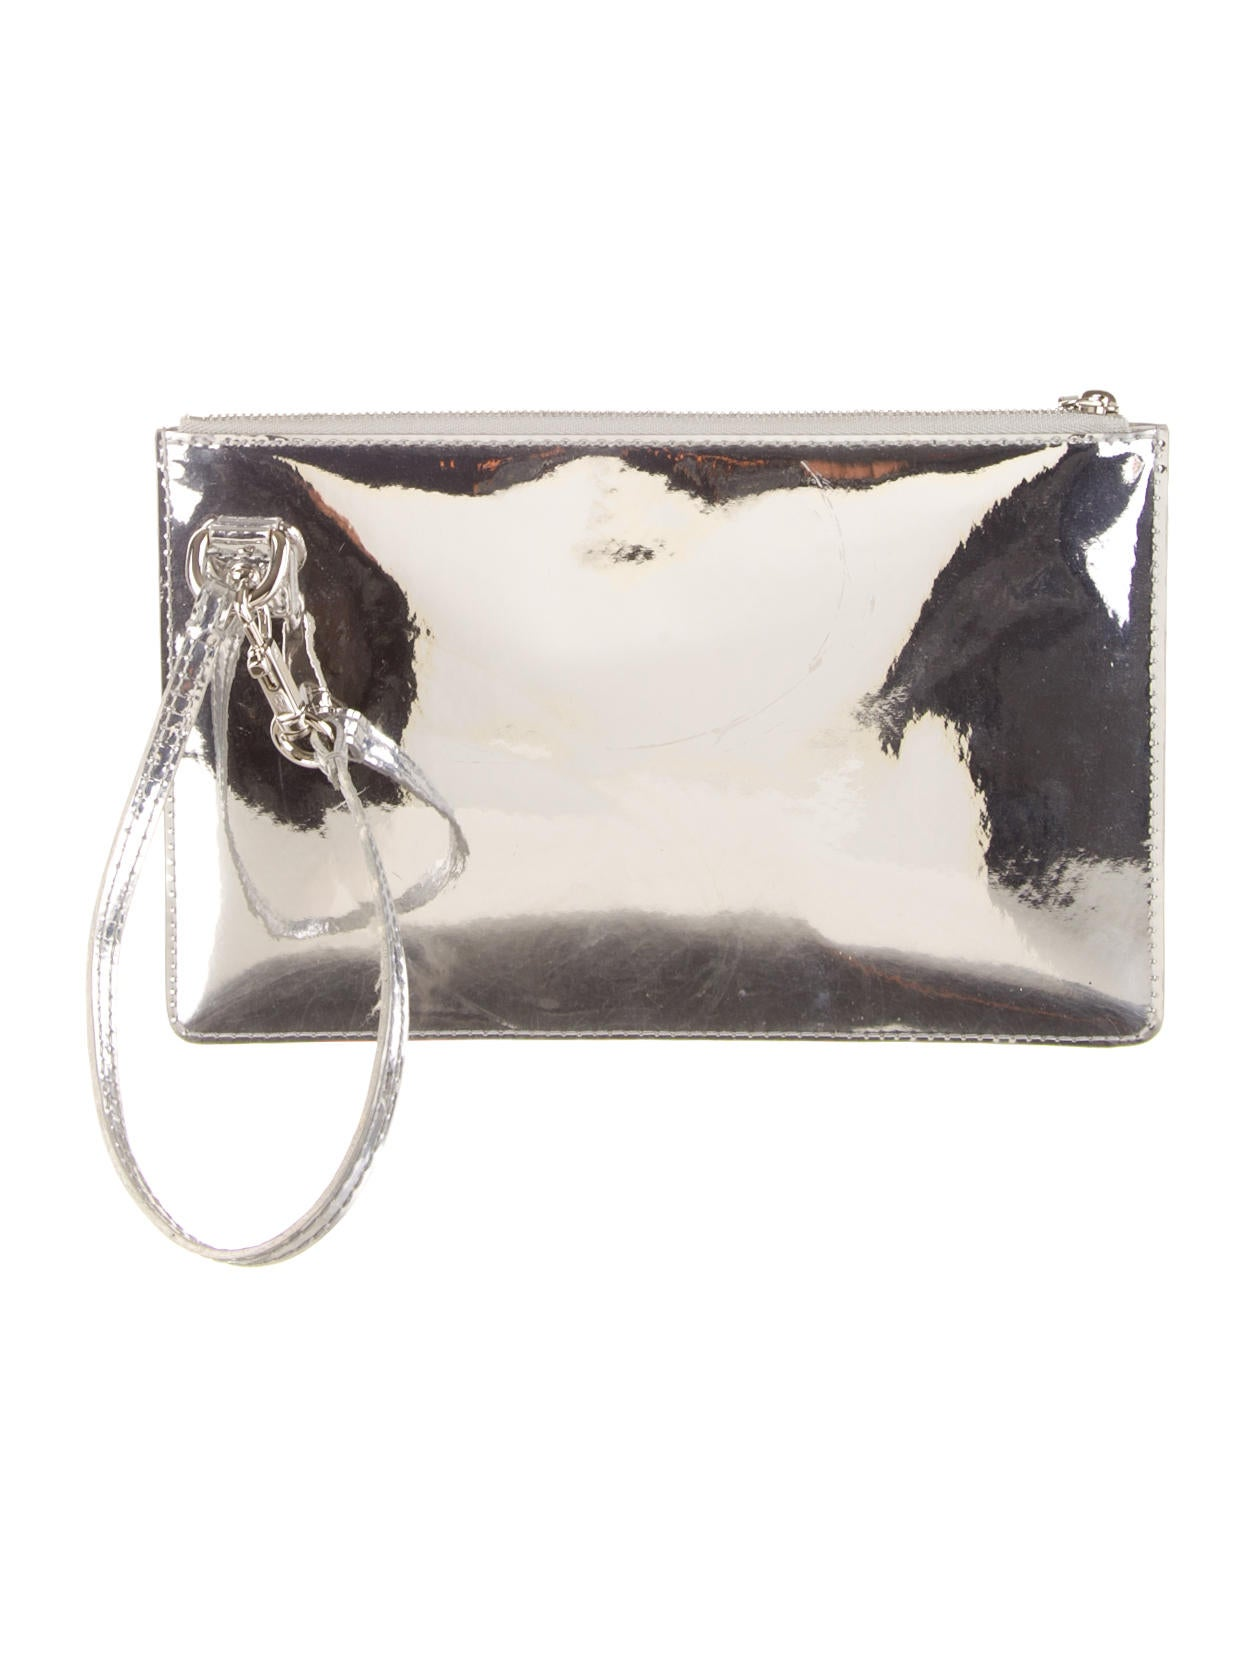 Louis vuitton miroir clutch handbags lou42358 the for Miroir louis vuitton